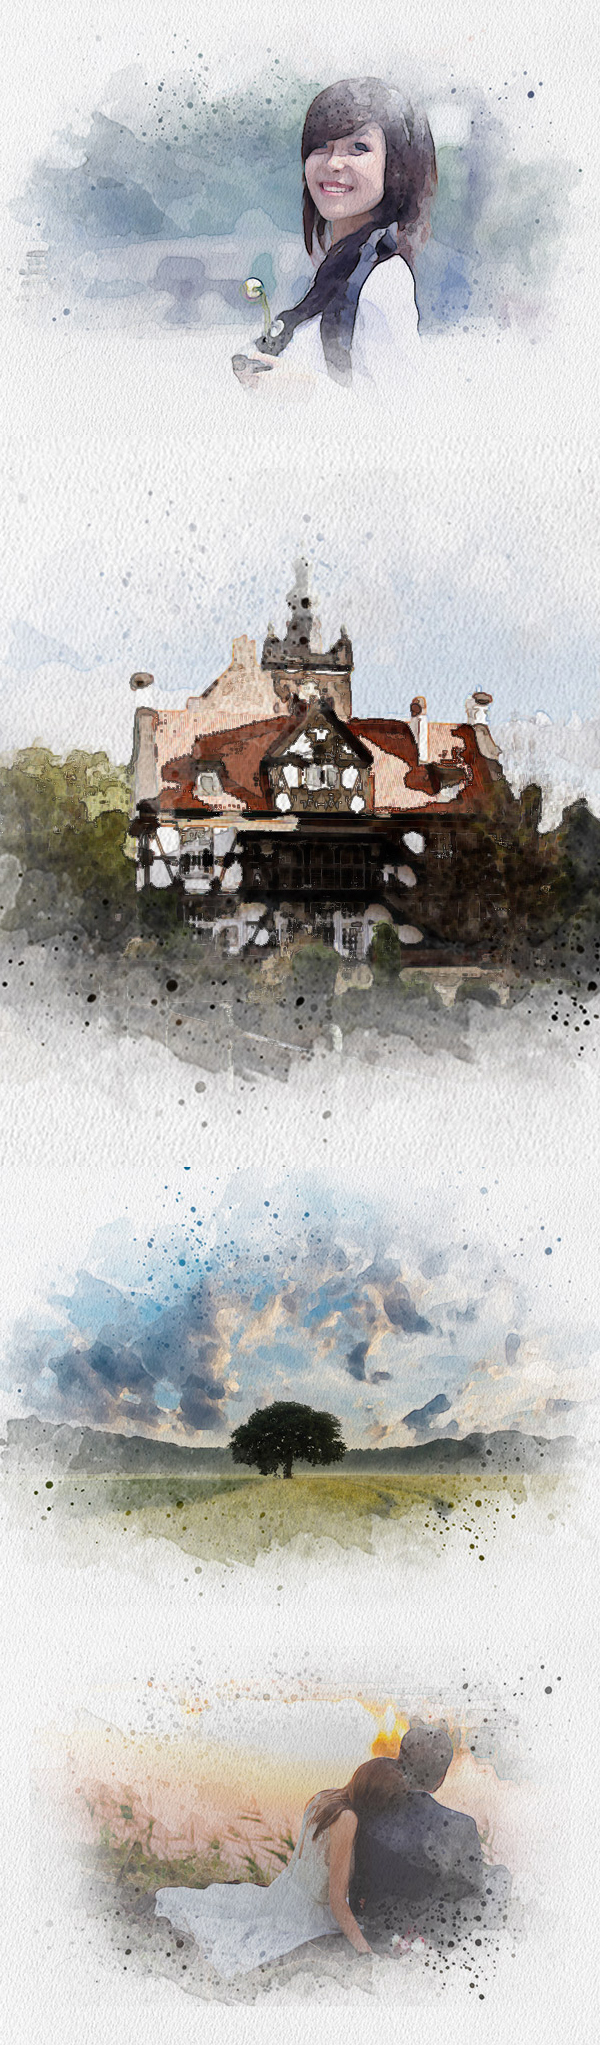 Create Artistic Watercolor Painting Effect in Photoshop